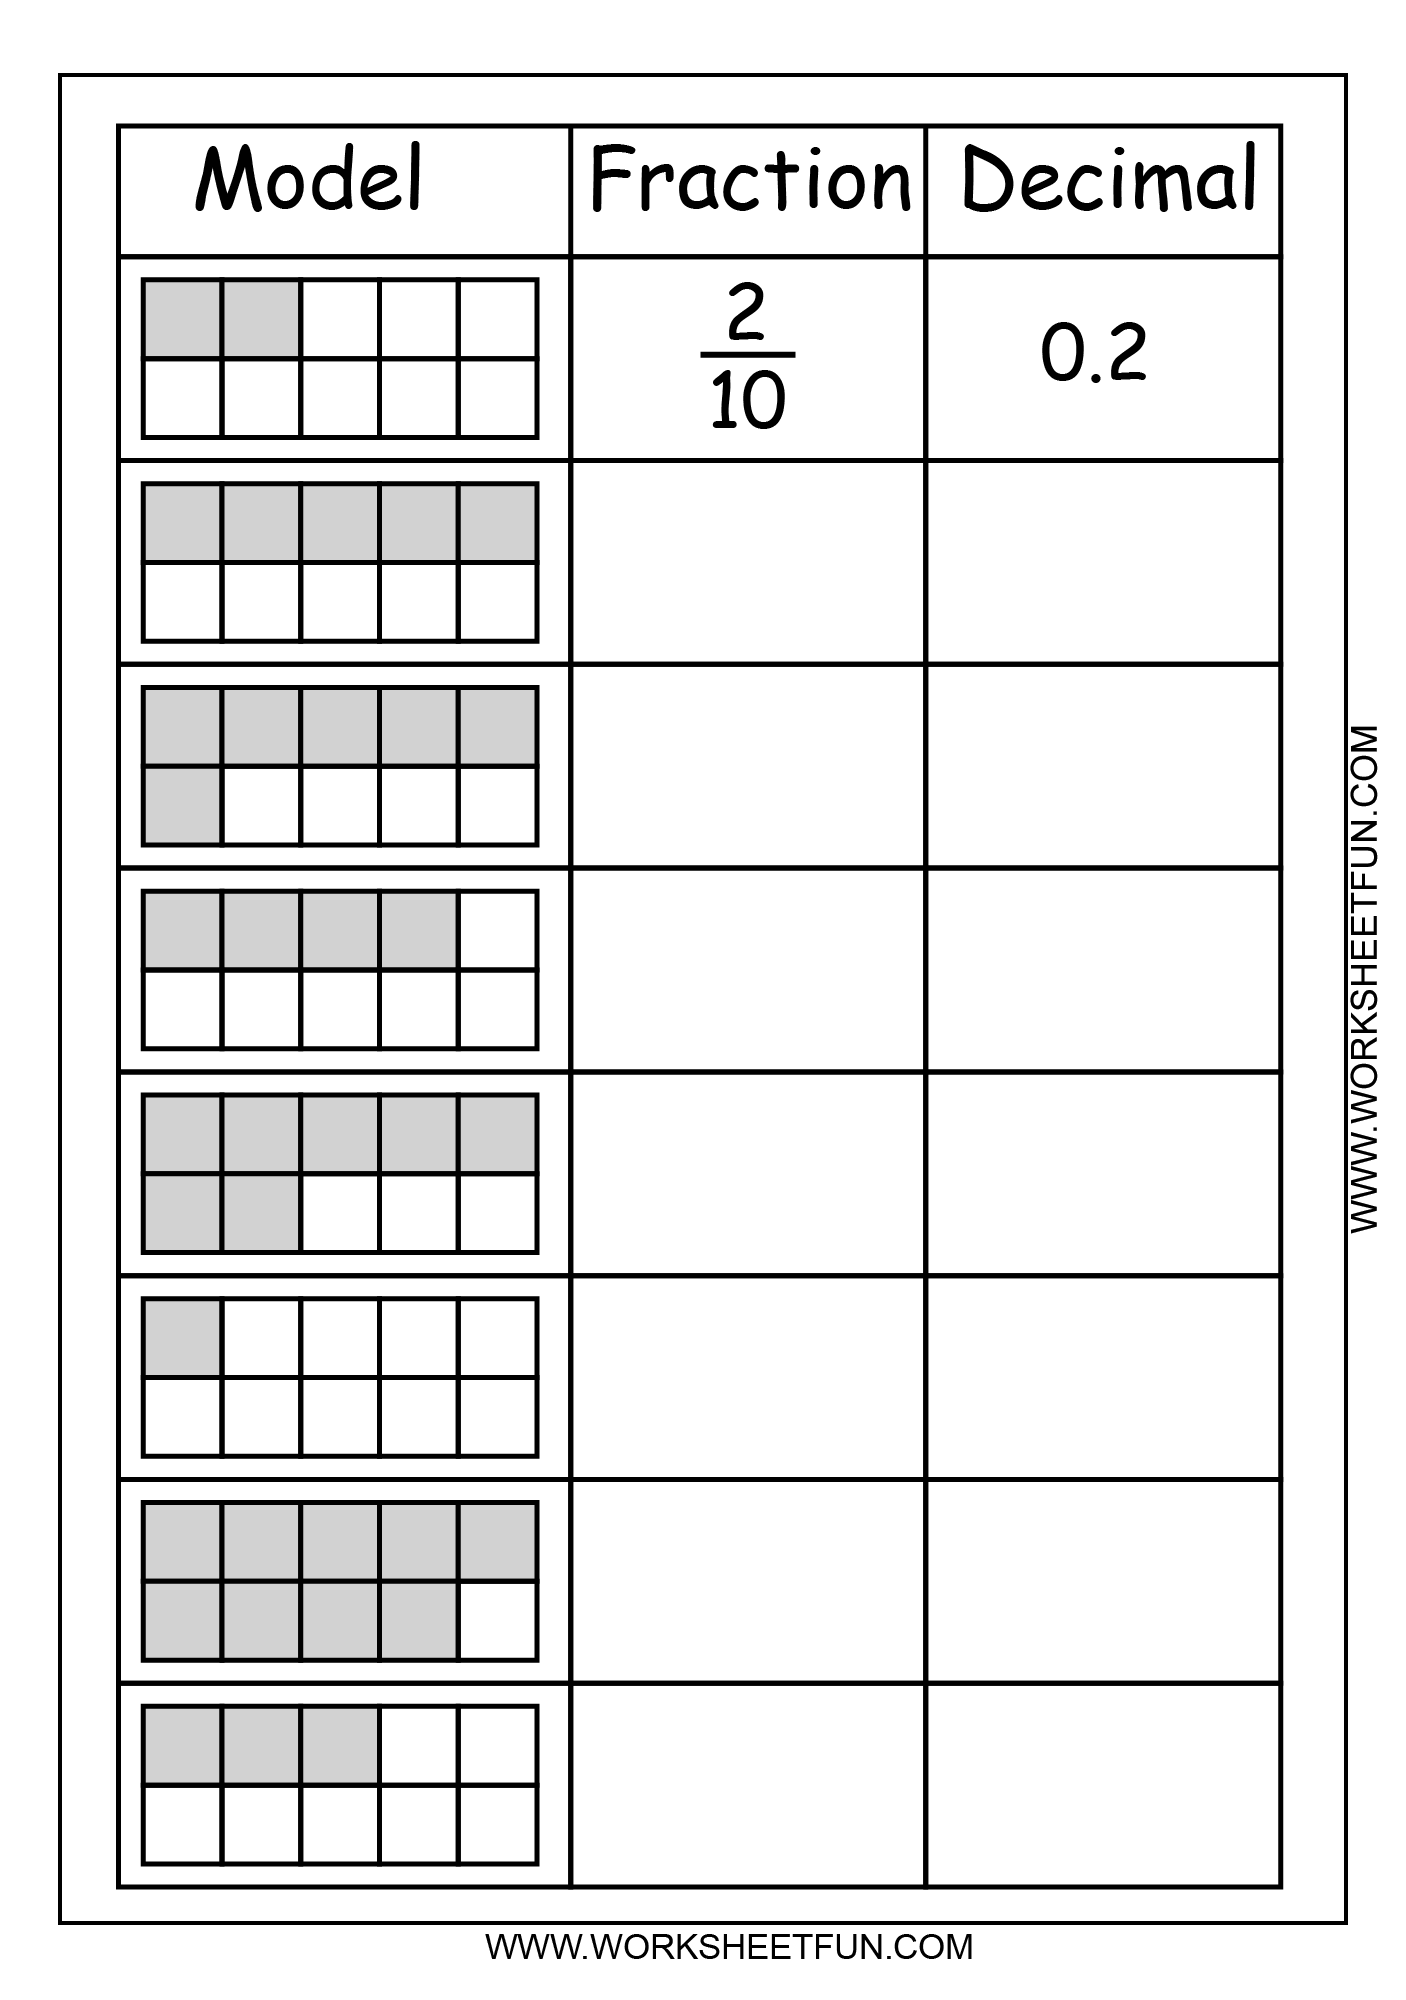 Model fraction decimal Printable Worksheets – Comparing Decimals and Fractions Worksheets